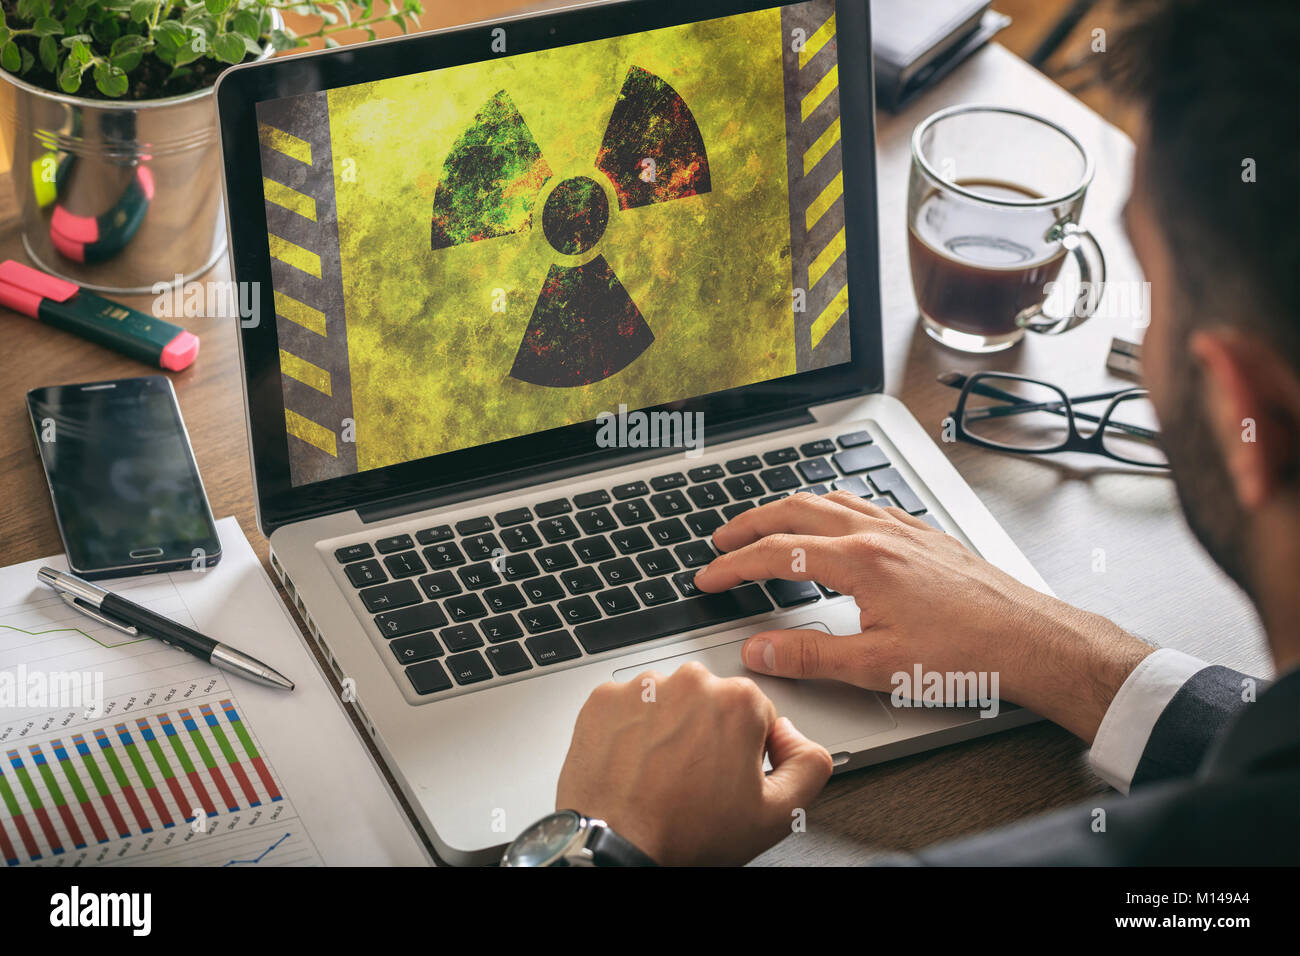 Man working in the office, radiation symbol on the laptop screen, - Stock Image